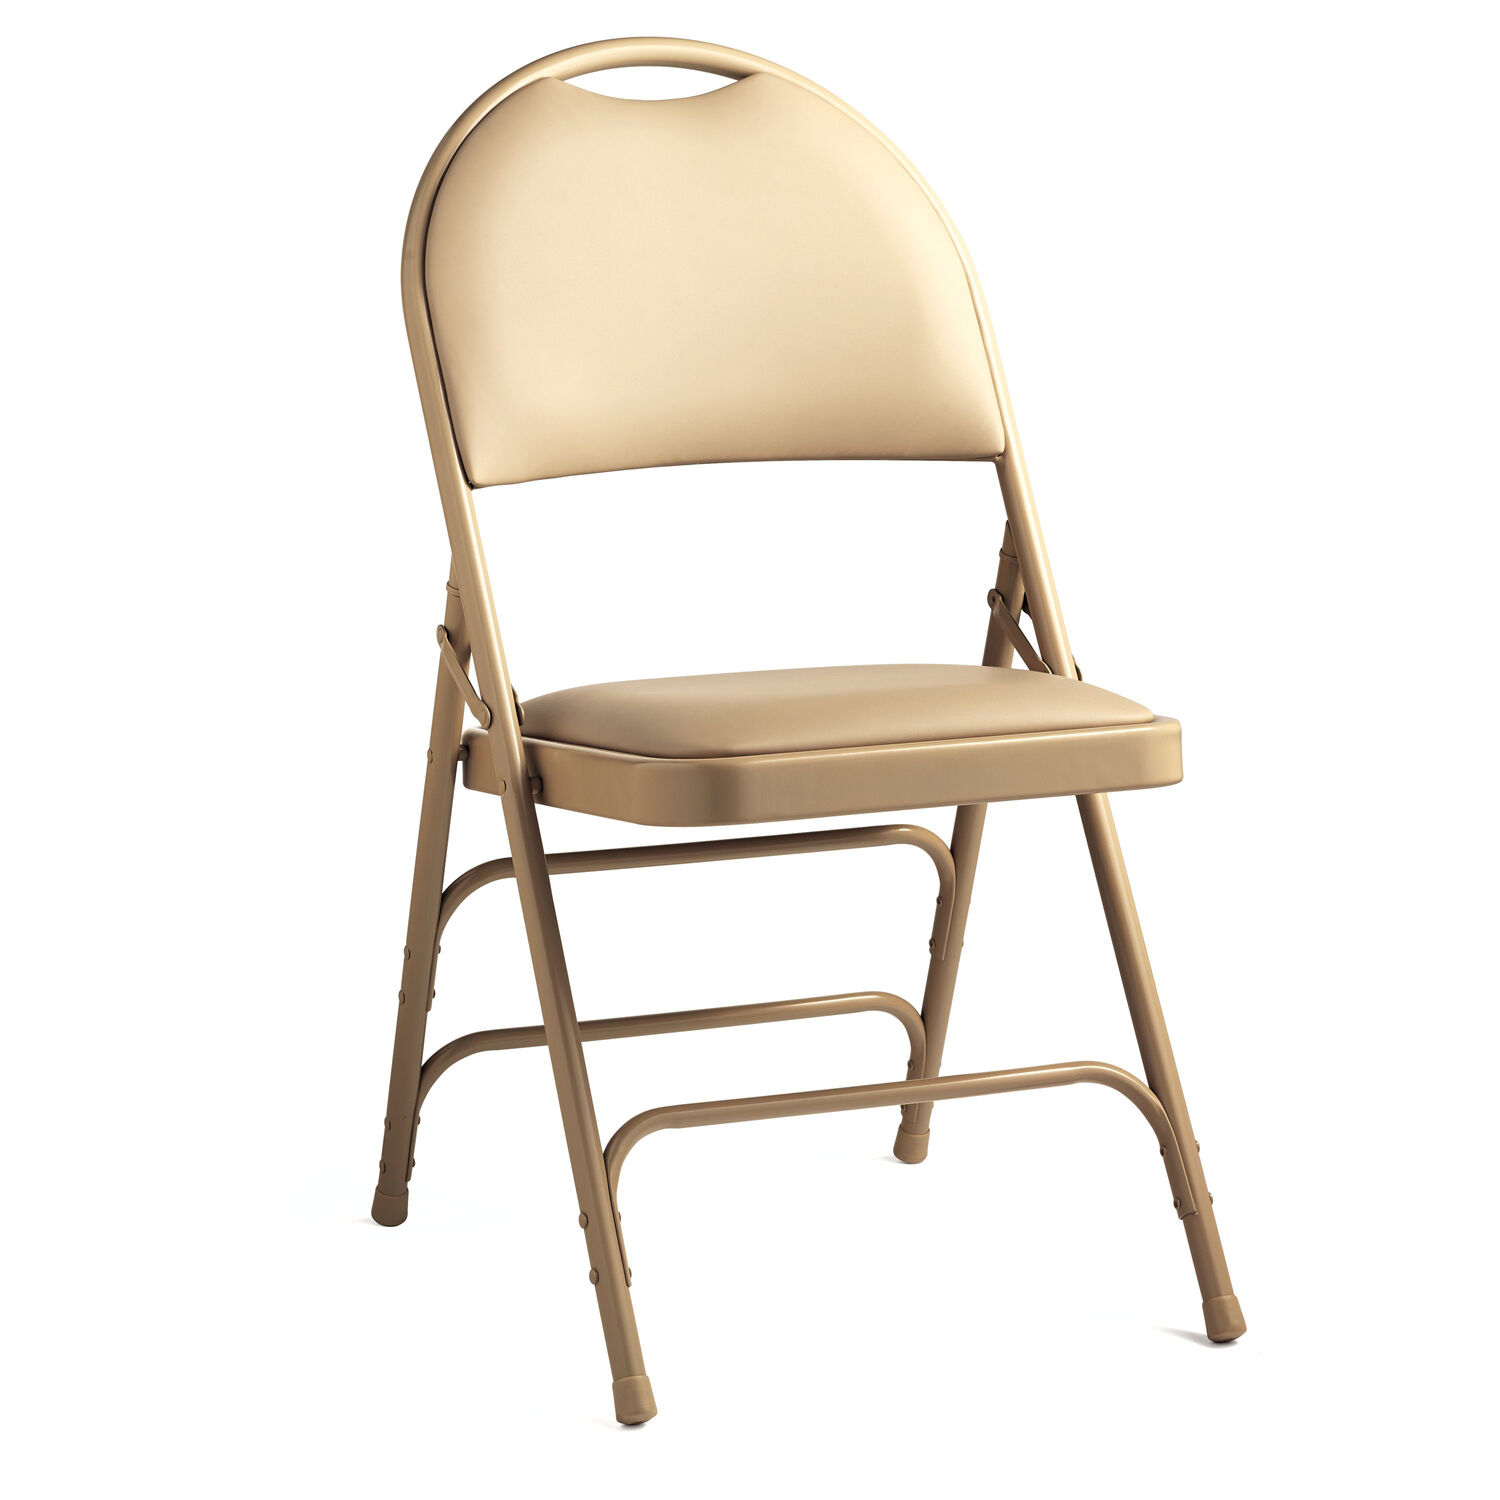 vinyl folding chairs. Samsonite Steel \u0026 Vinyl Folding Chair With Memory Foam (Case/4) In The Color Neutral. Chairs B